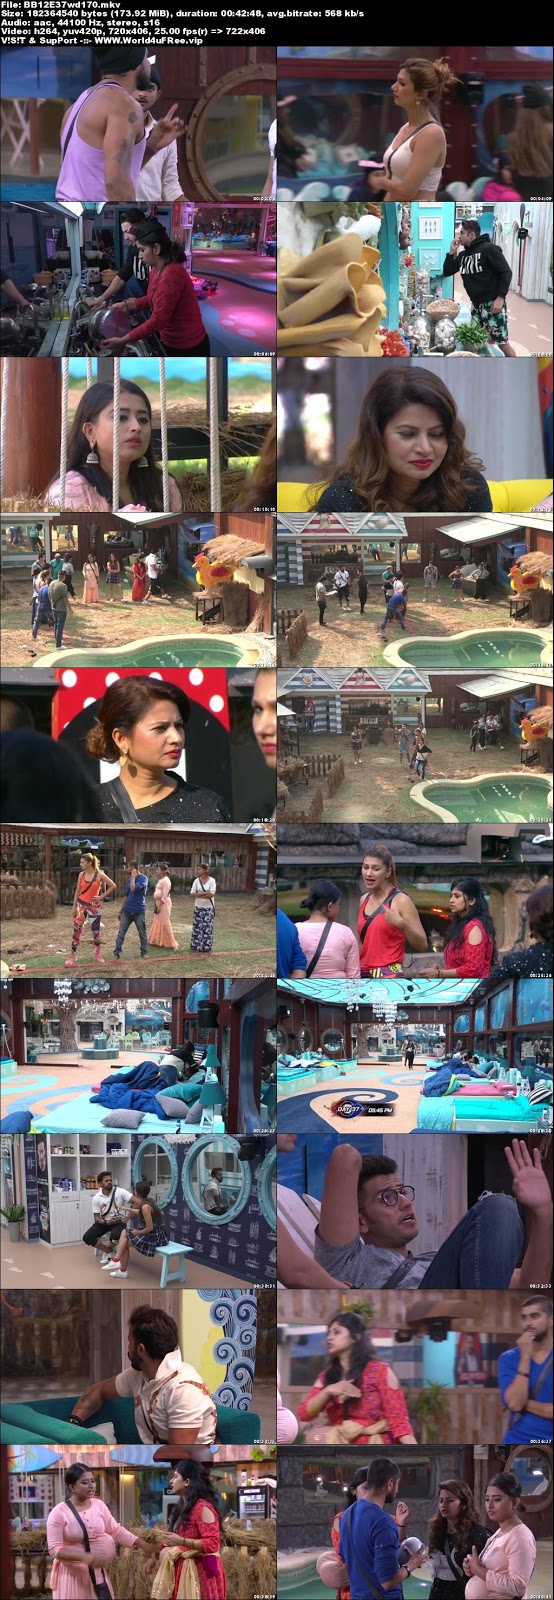 Bigg Boss 12 Episode 37 23 October 2018 WEBRip 480p 170Mb x264 world4ufree.vip tv show Episode 37 23 October 2018 world4ufree.vip 200mb 250mb 300mb compressed small size free download or watch online at world4ufree.vip